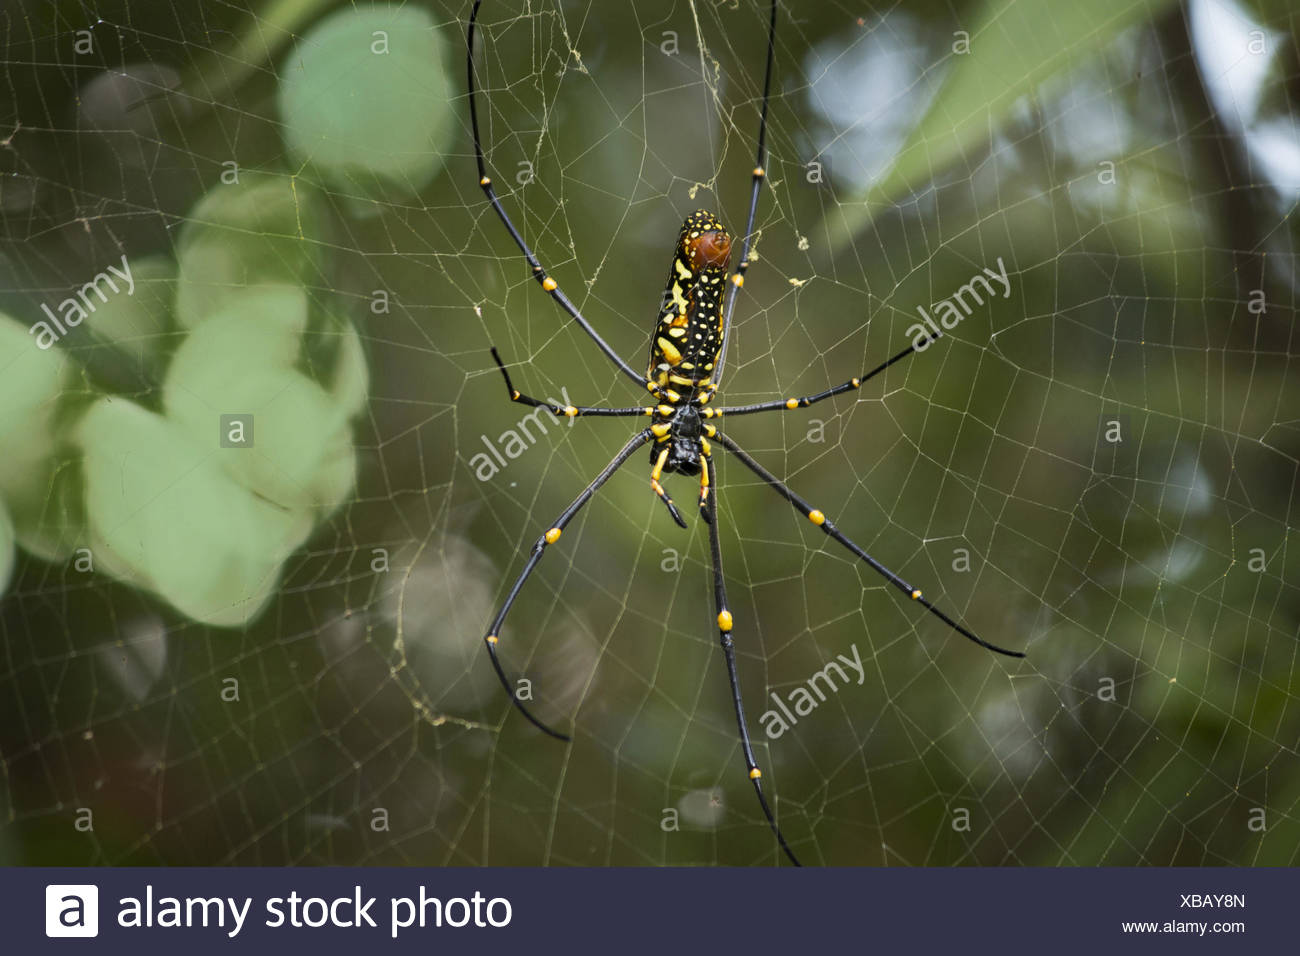 Giant wood spider, Nephila sp., Manu, Tripura A large spider that makes large orb webs nearly 8-10 feet in diameter. - Stock Image